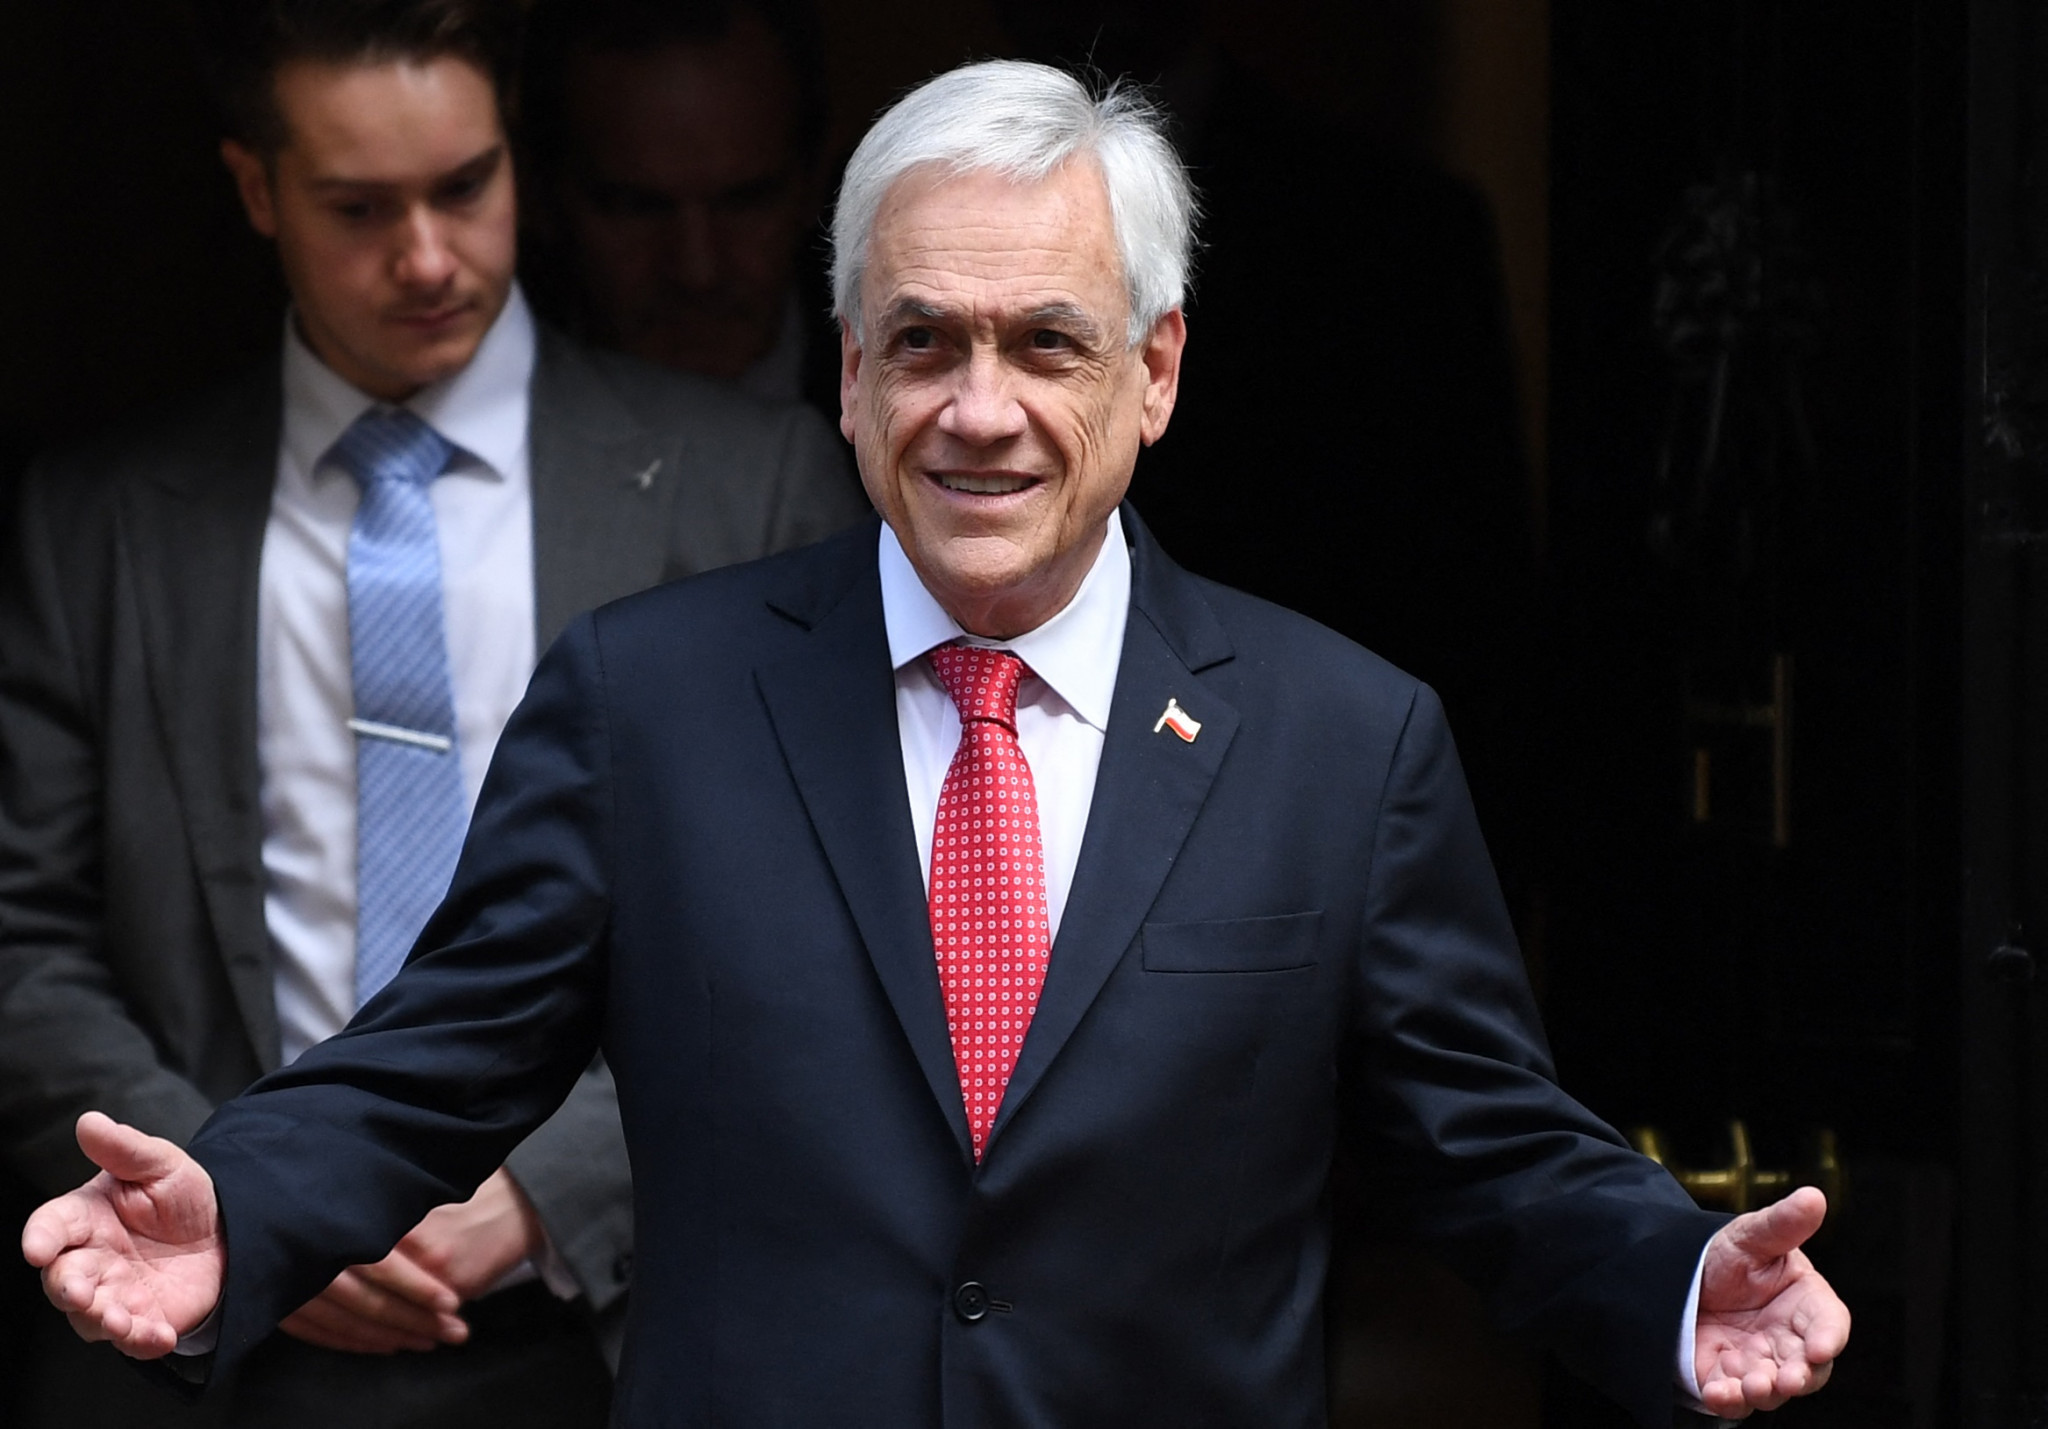 Chilean President features Santiago 2023 prominently in $82.1 billion budget for 2022